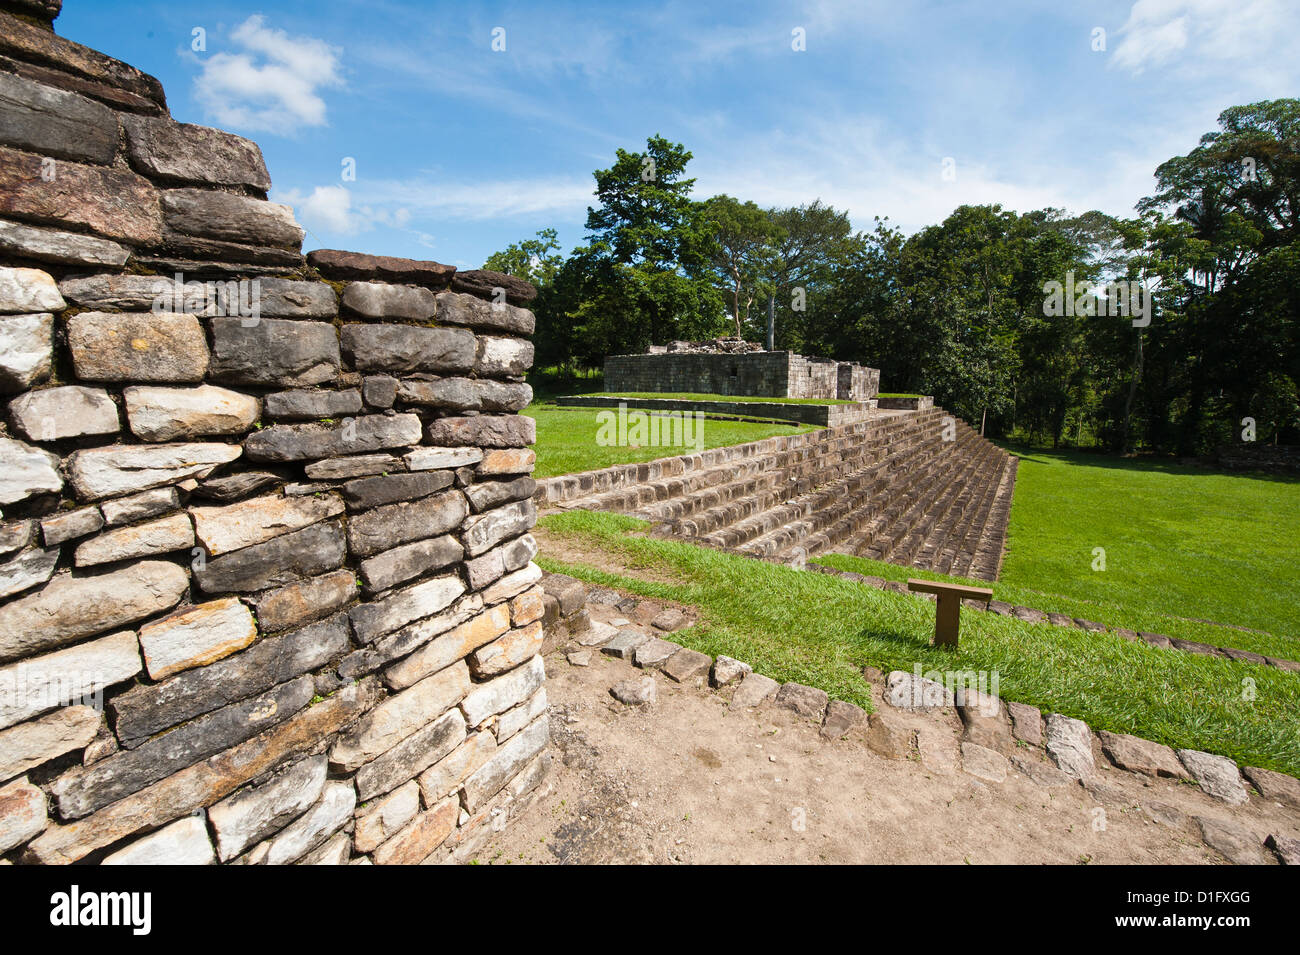 Mayan ruins at Quirigua Archaeological Park, UNESCO World Heritage Site, Guatemala, Central America - Stock Image